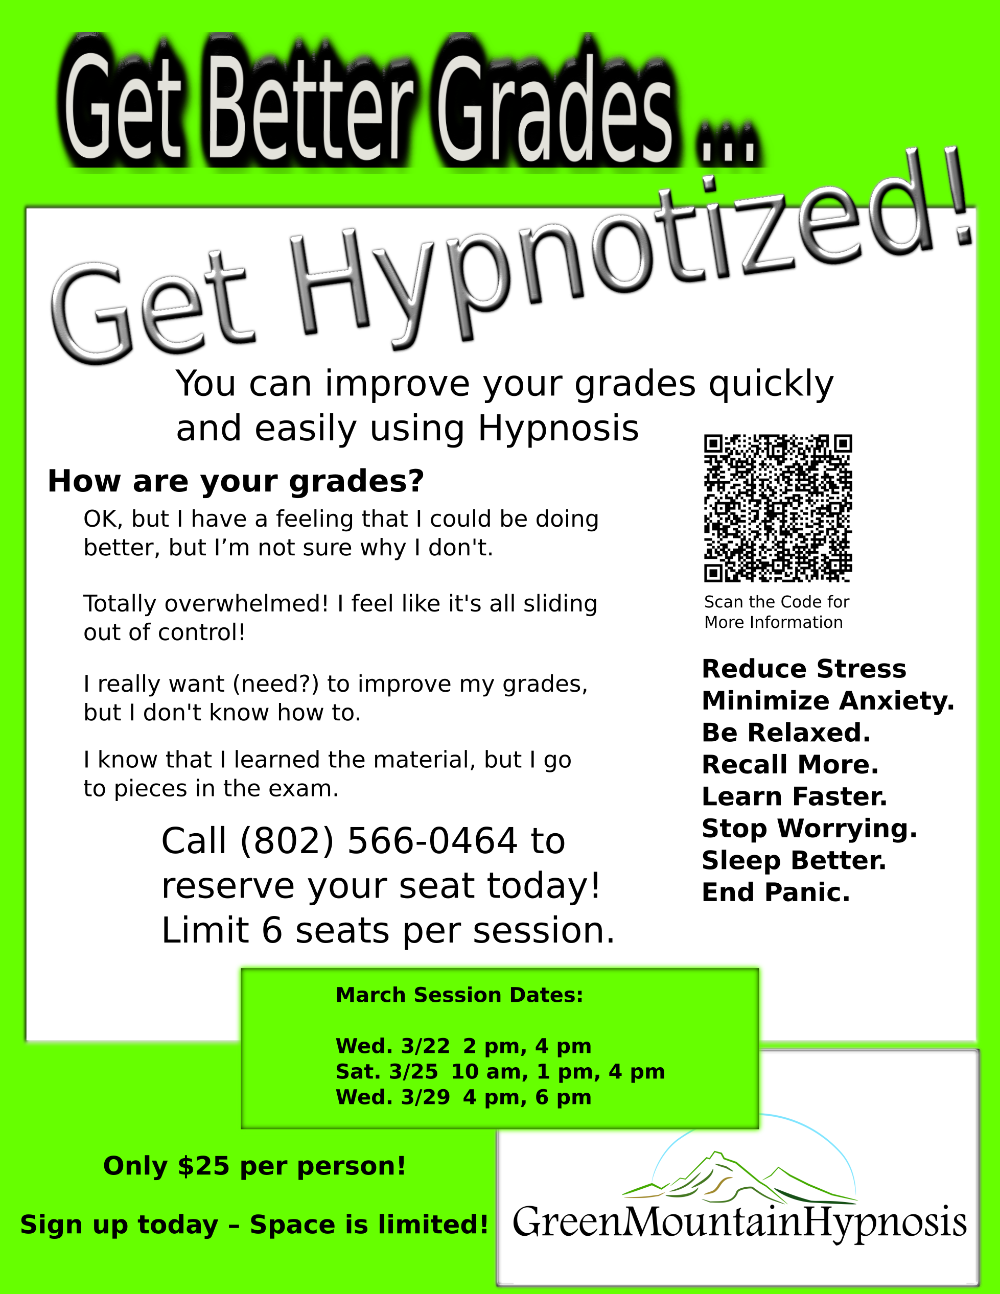 green mountain hypnosis get better grades wark dm1 university counseling and consulting services university of minnesota minneapolis